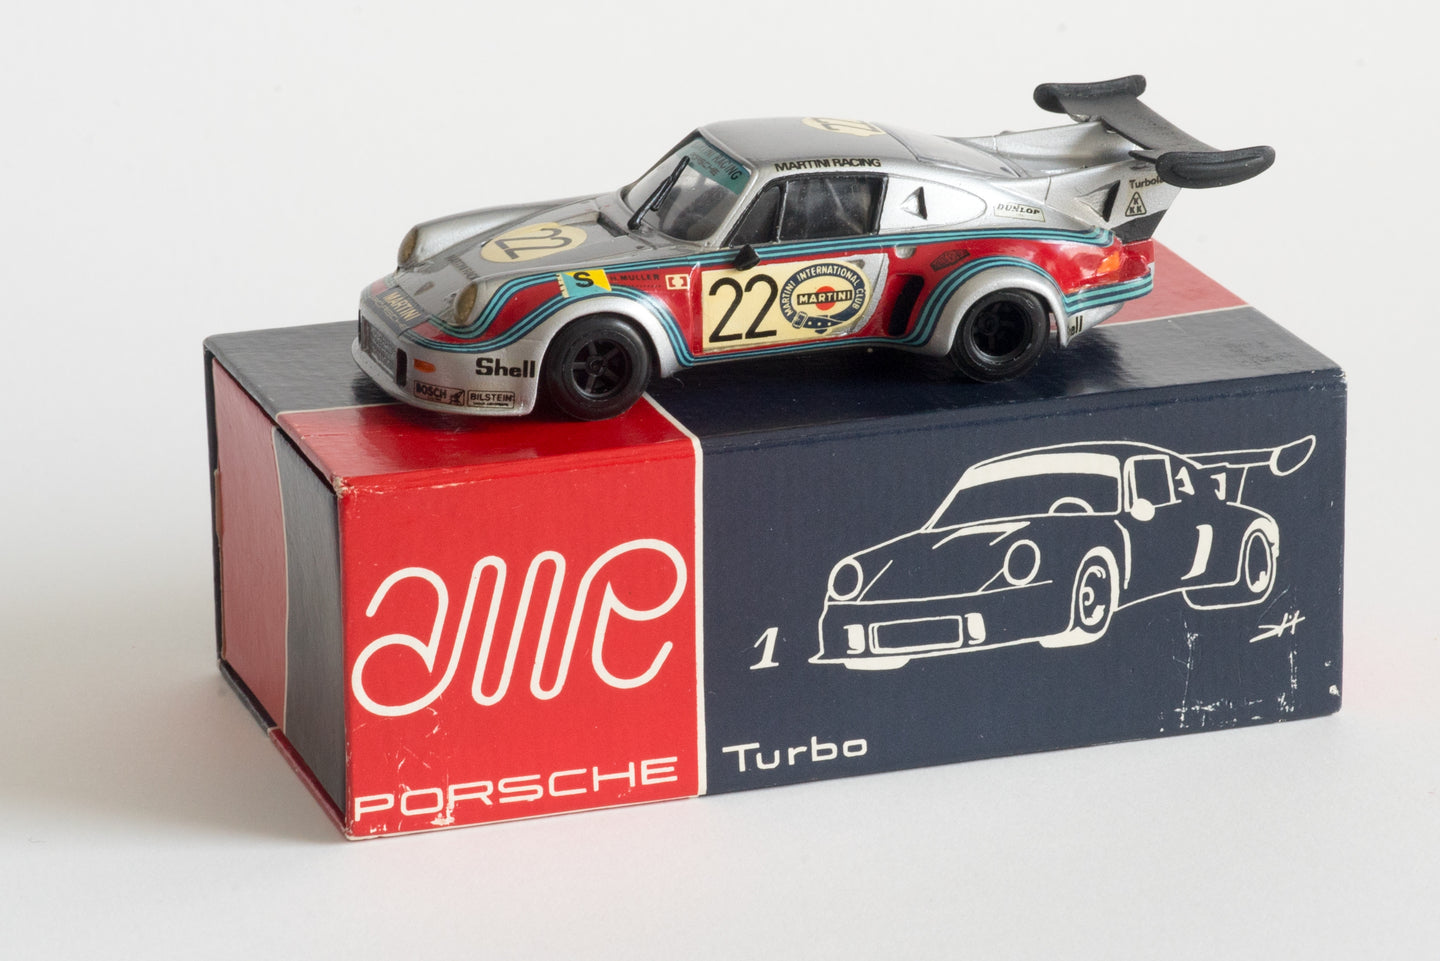 AMR First Factory Built Model - 1/43 Porsche Turbo RSR Le Mans 1974